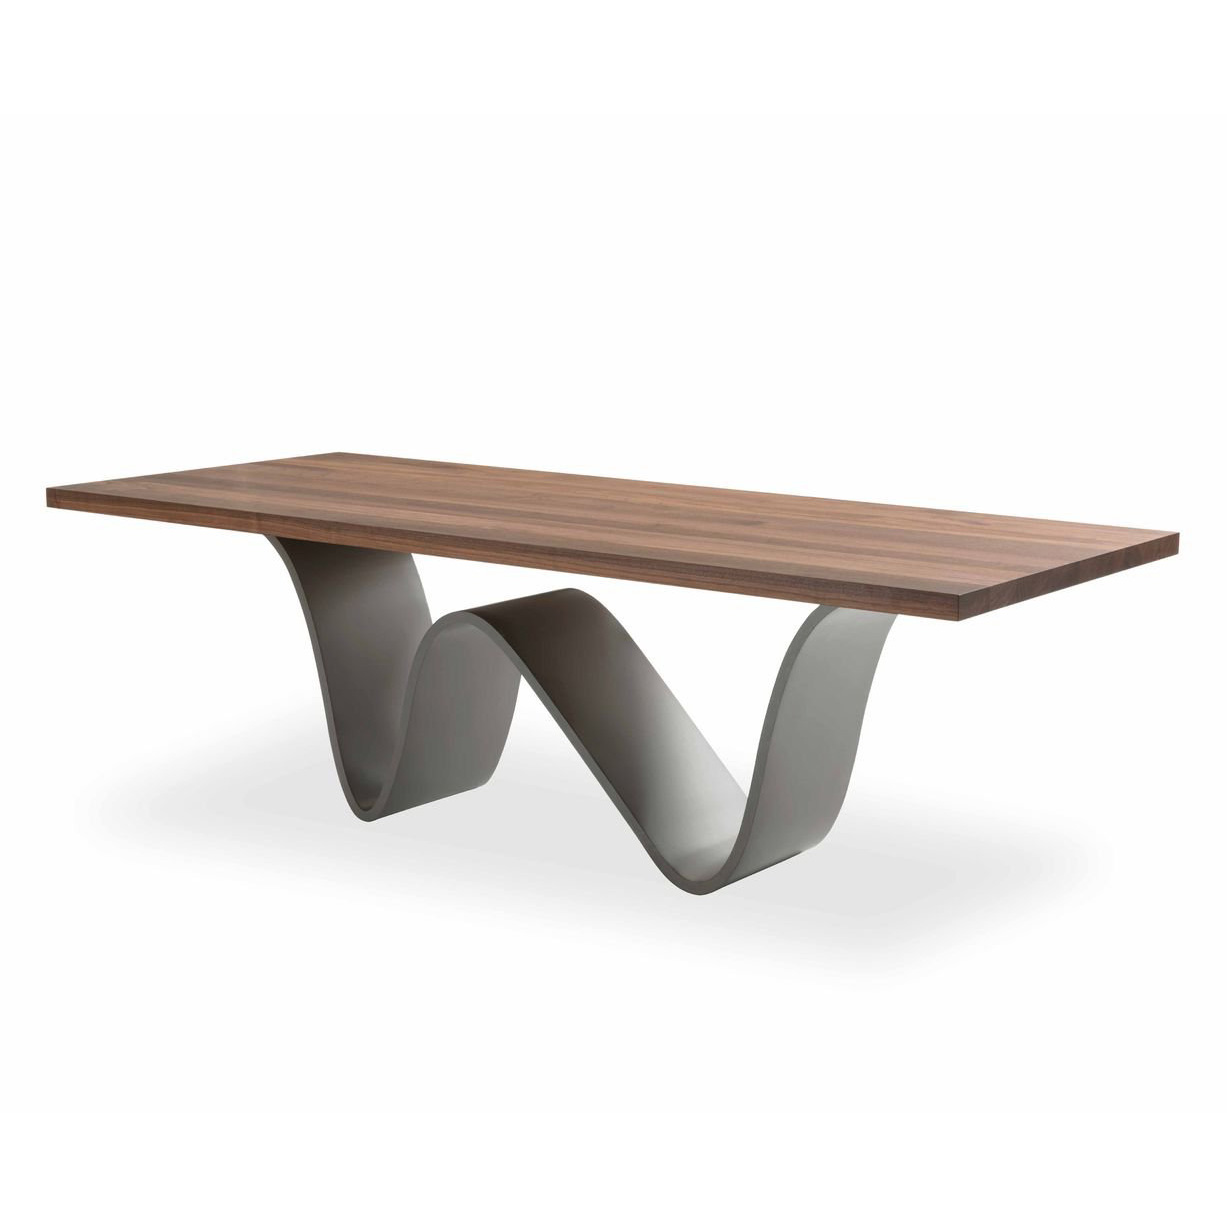 Bree E Onda dining table from Riva 1920